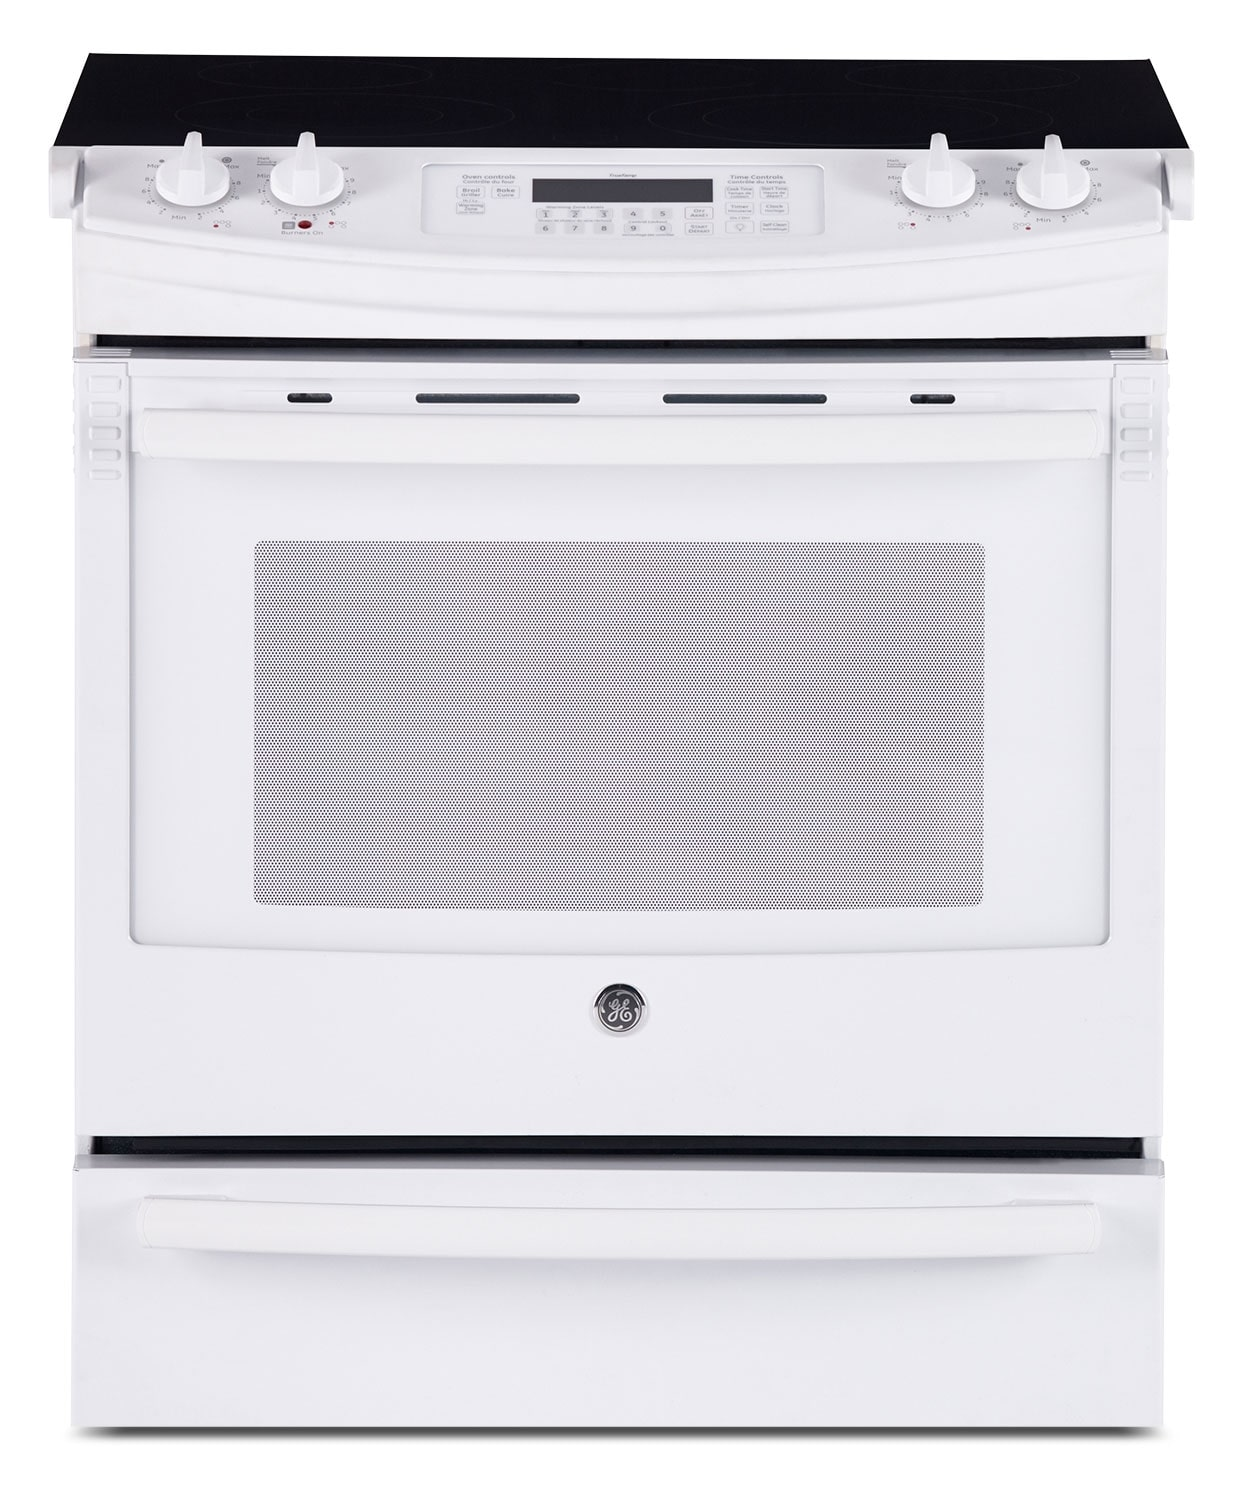 Cooking Products - GE White Slide-In Electric Convection Range (5.2 Cu. Ft.) - JCS860DFWW